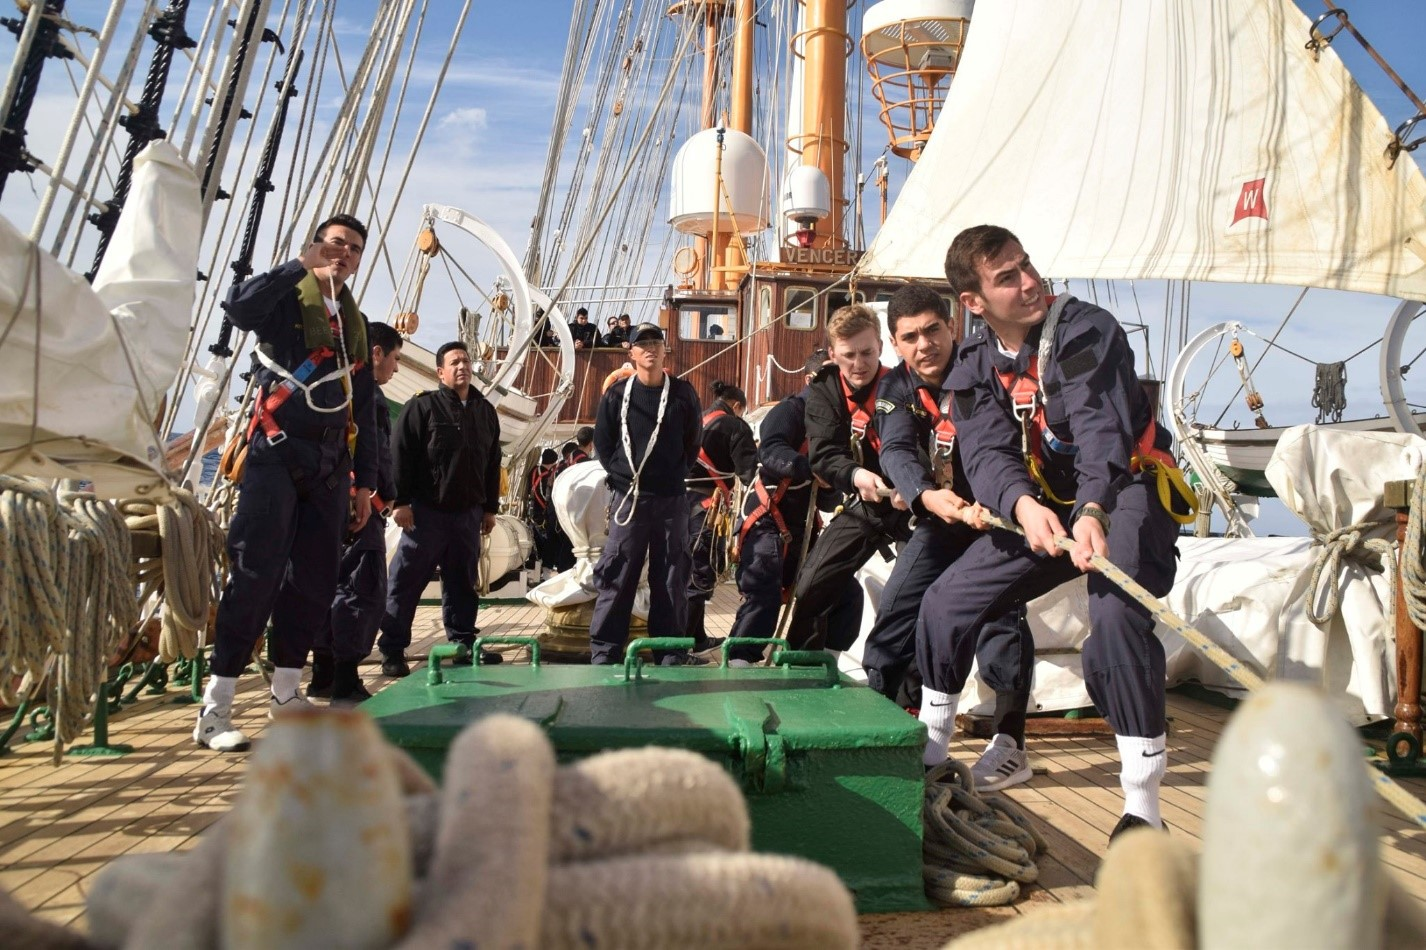 NCdt Isaac Goggin raising the sails of the Chilean tall ship Esmeralda alongside officers from Chile, Brazil and Portugal. NCdt Goggin joined 20 other international sailors and 60 Chilean midshipmen in a training voyage across the Pacific in the summer of 2019. Image supplied by NCdt Isaac Goggin